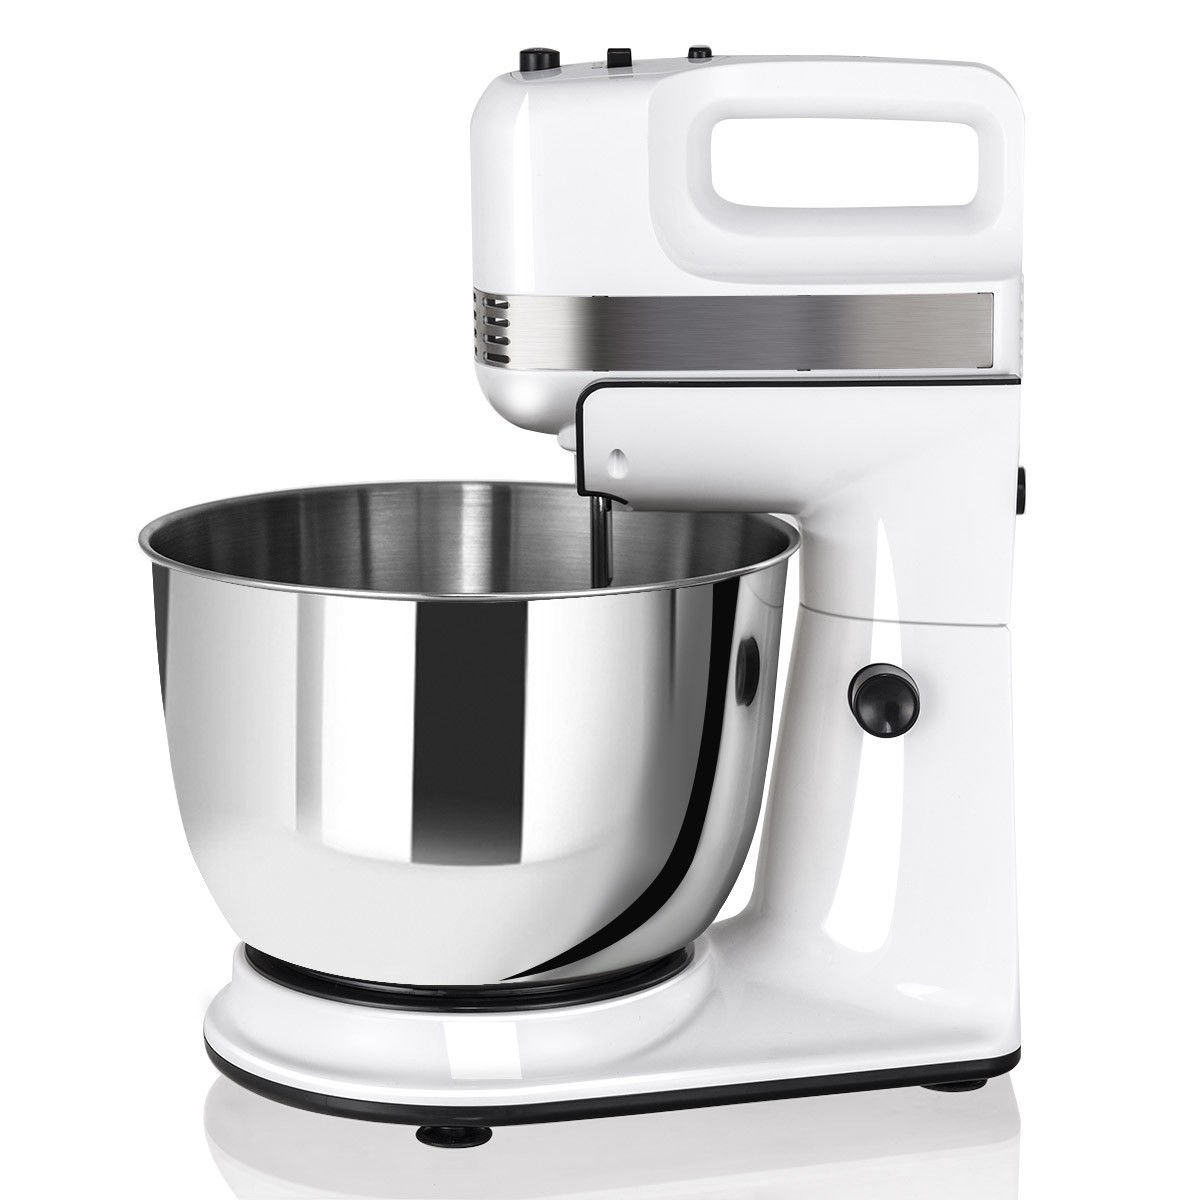 GHP 250W 120V 5-Speed Stainless Steel Bowl Stand Mixer with Beaters & Dough Hooks